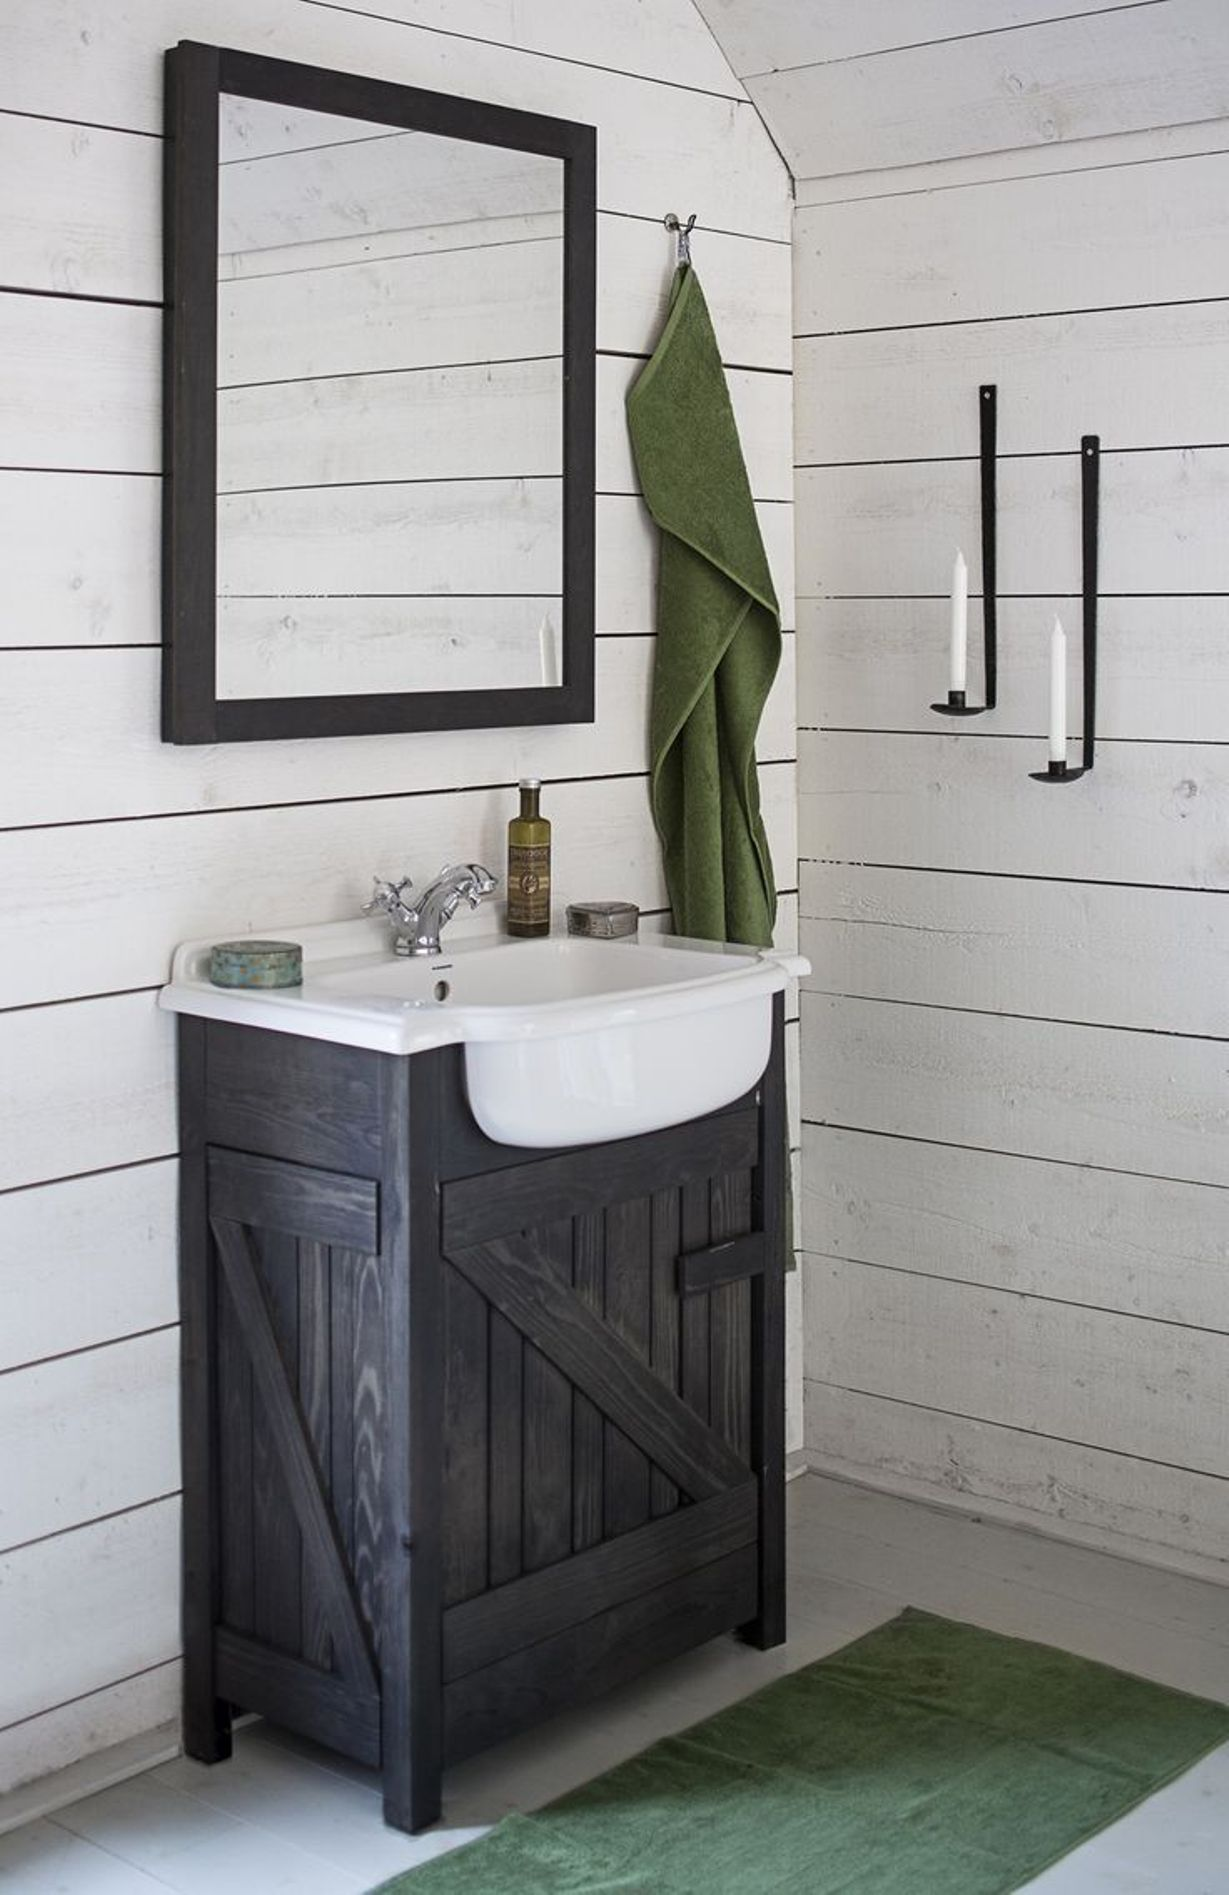 Black Rustic Bathroom Vanity: Bathroom , Elegant Rustic Bathroom Vanities : Small Rustic